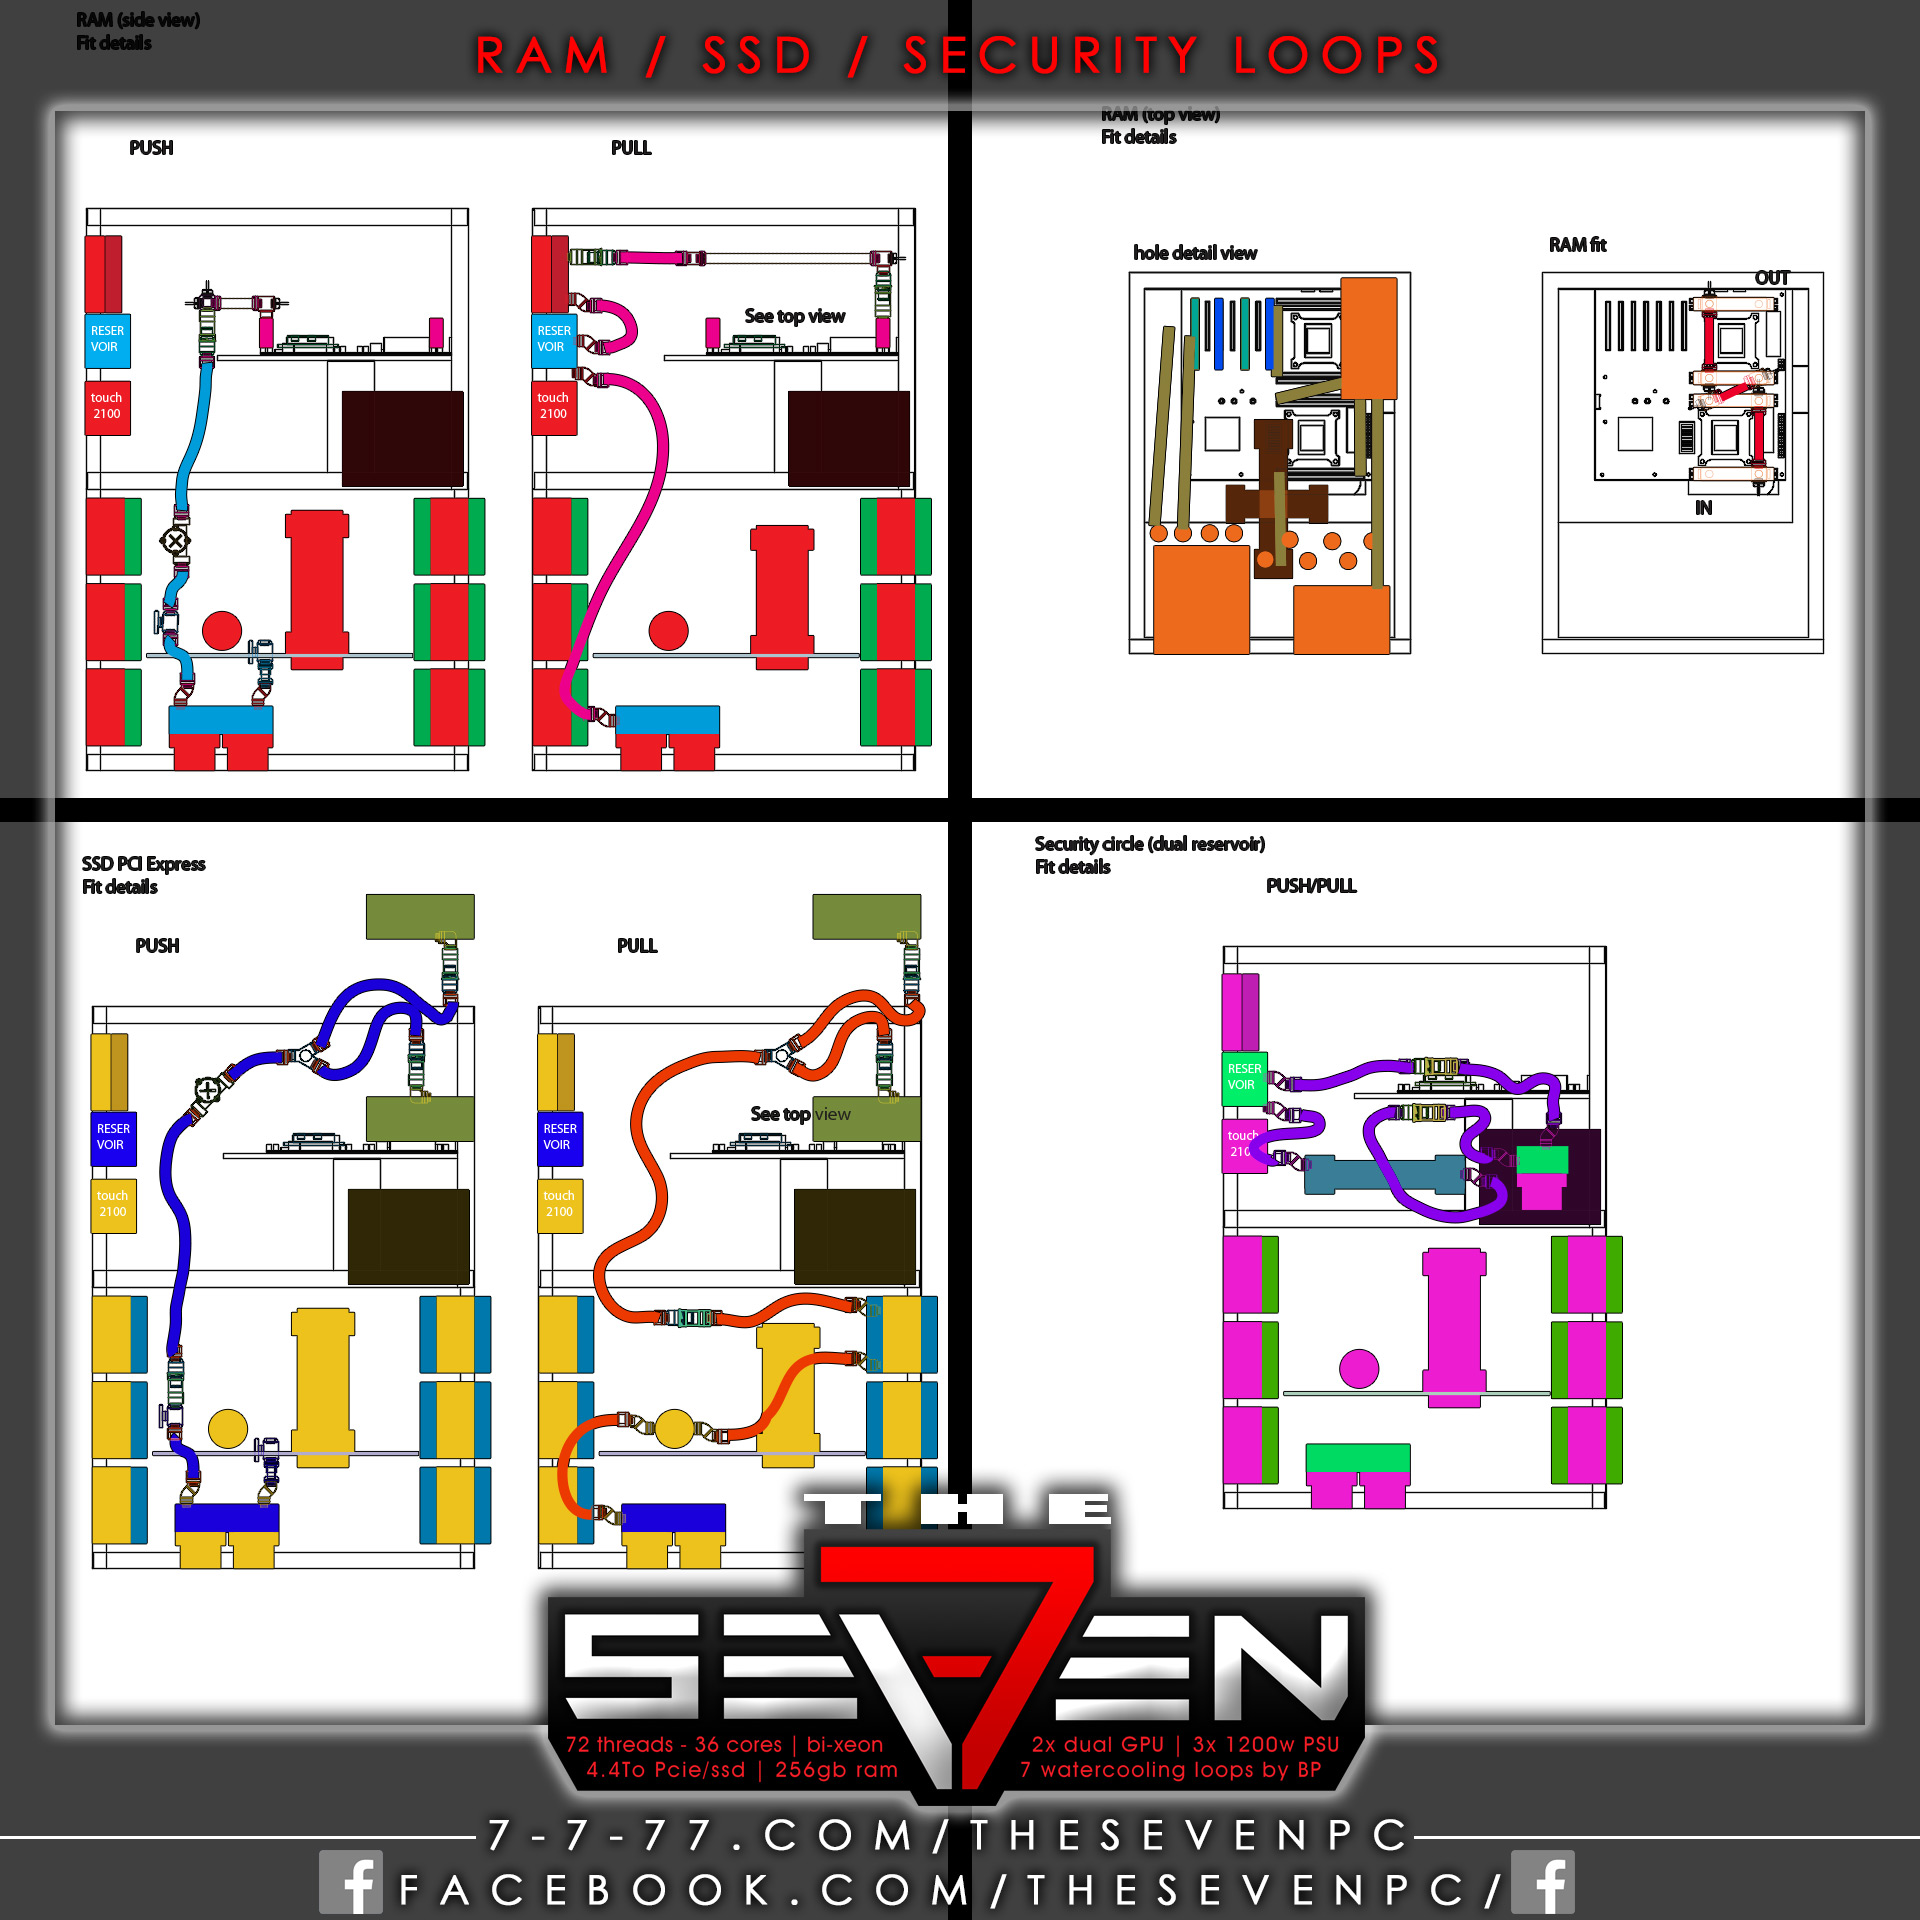 http://7-7-77.com/thesevenpc/pic/the-seven-pc-watercooling-map-03.jpg